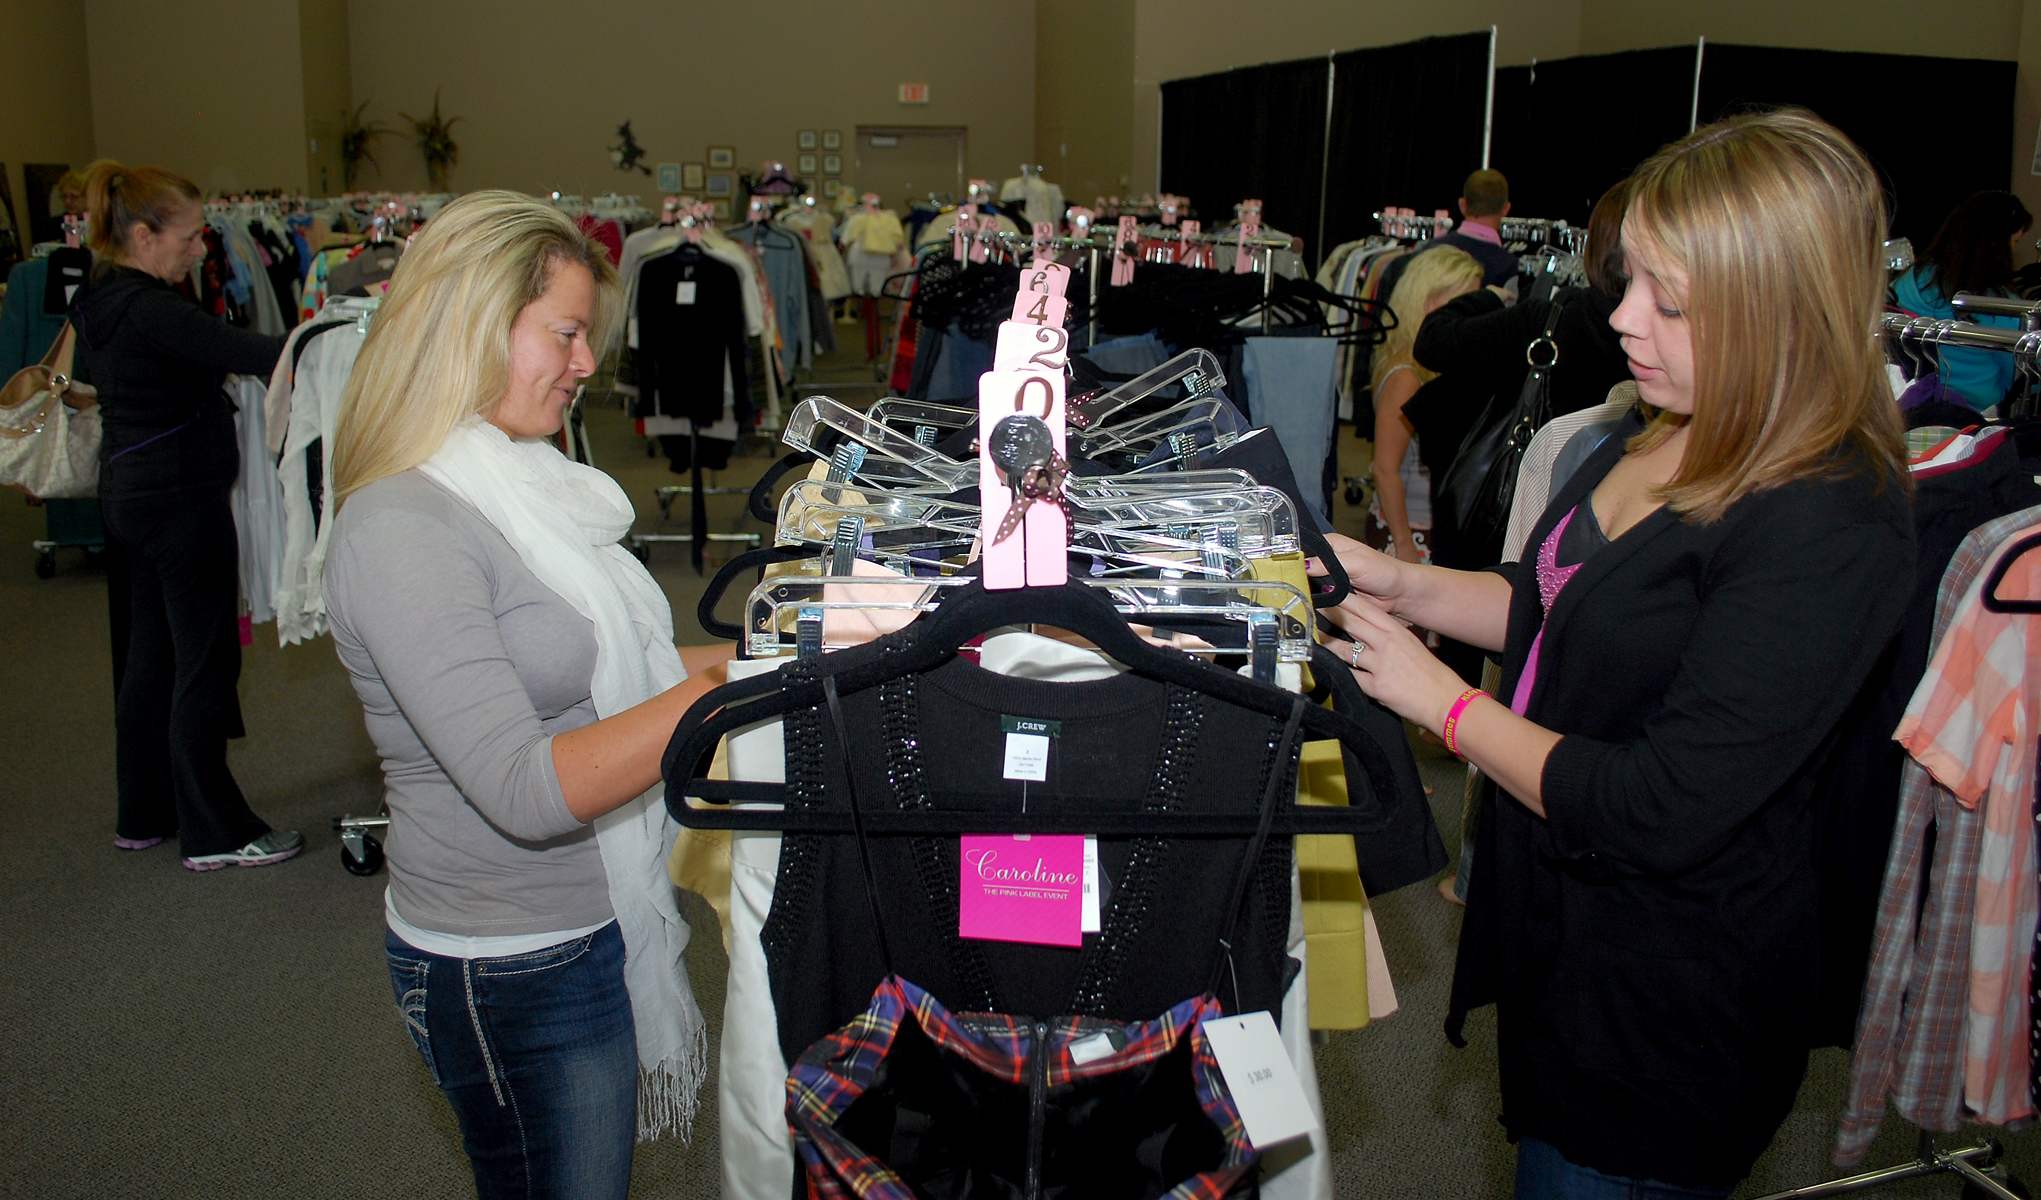 Yana Dess, left, and Christine Daviduke look at a rack of clothes at the Pink Label Event.